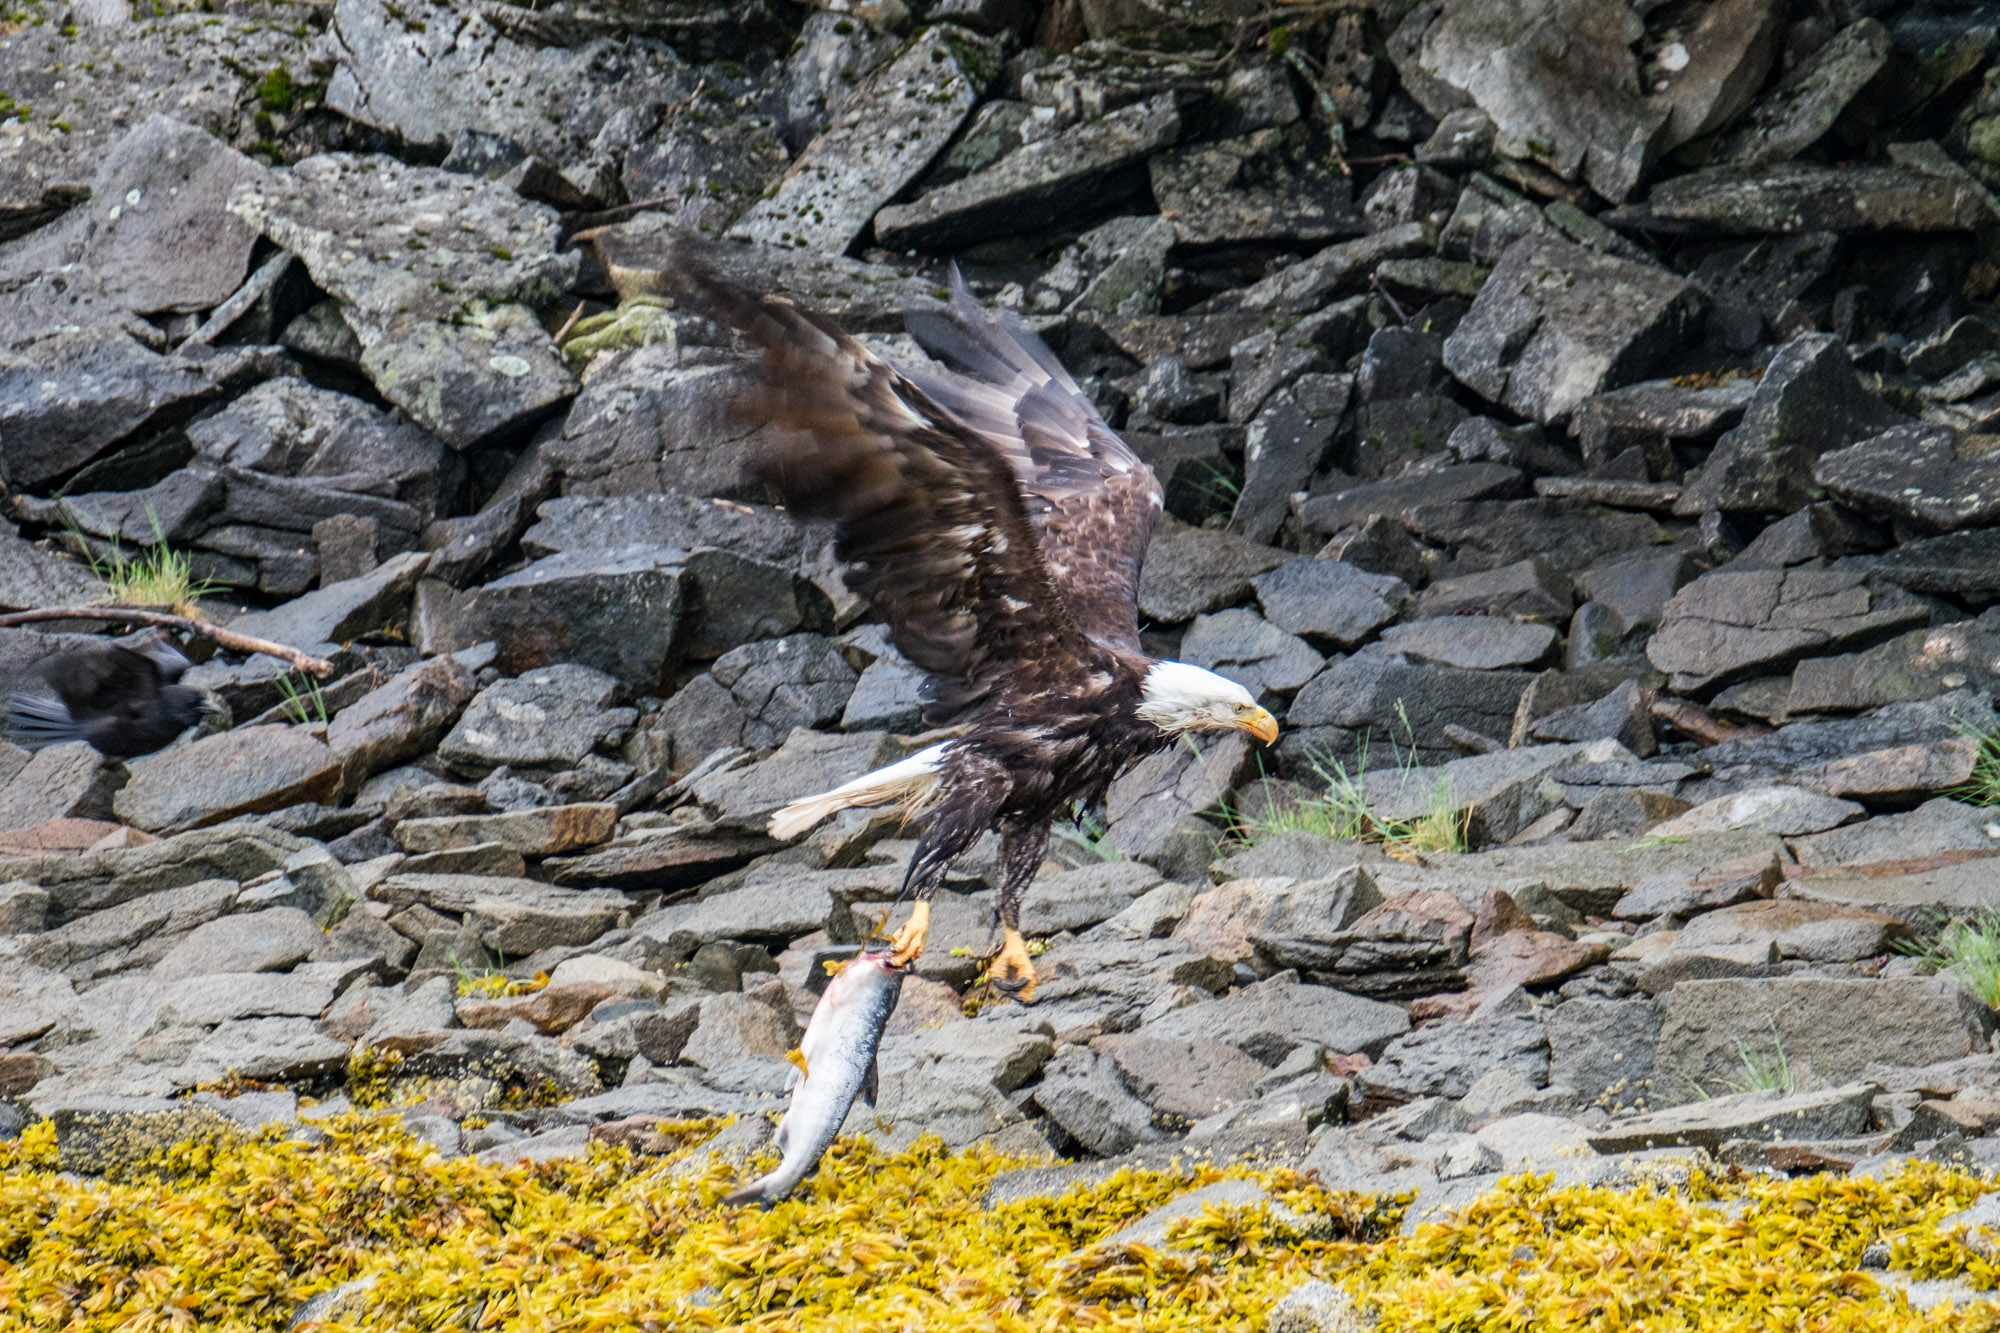 This eagle tried carrying this massive salmon in the air, but it turned out to be a bit too heavy.